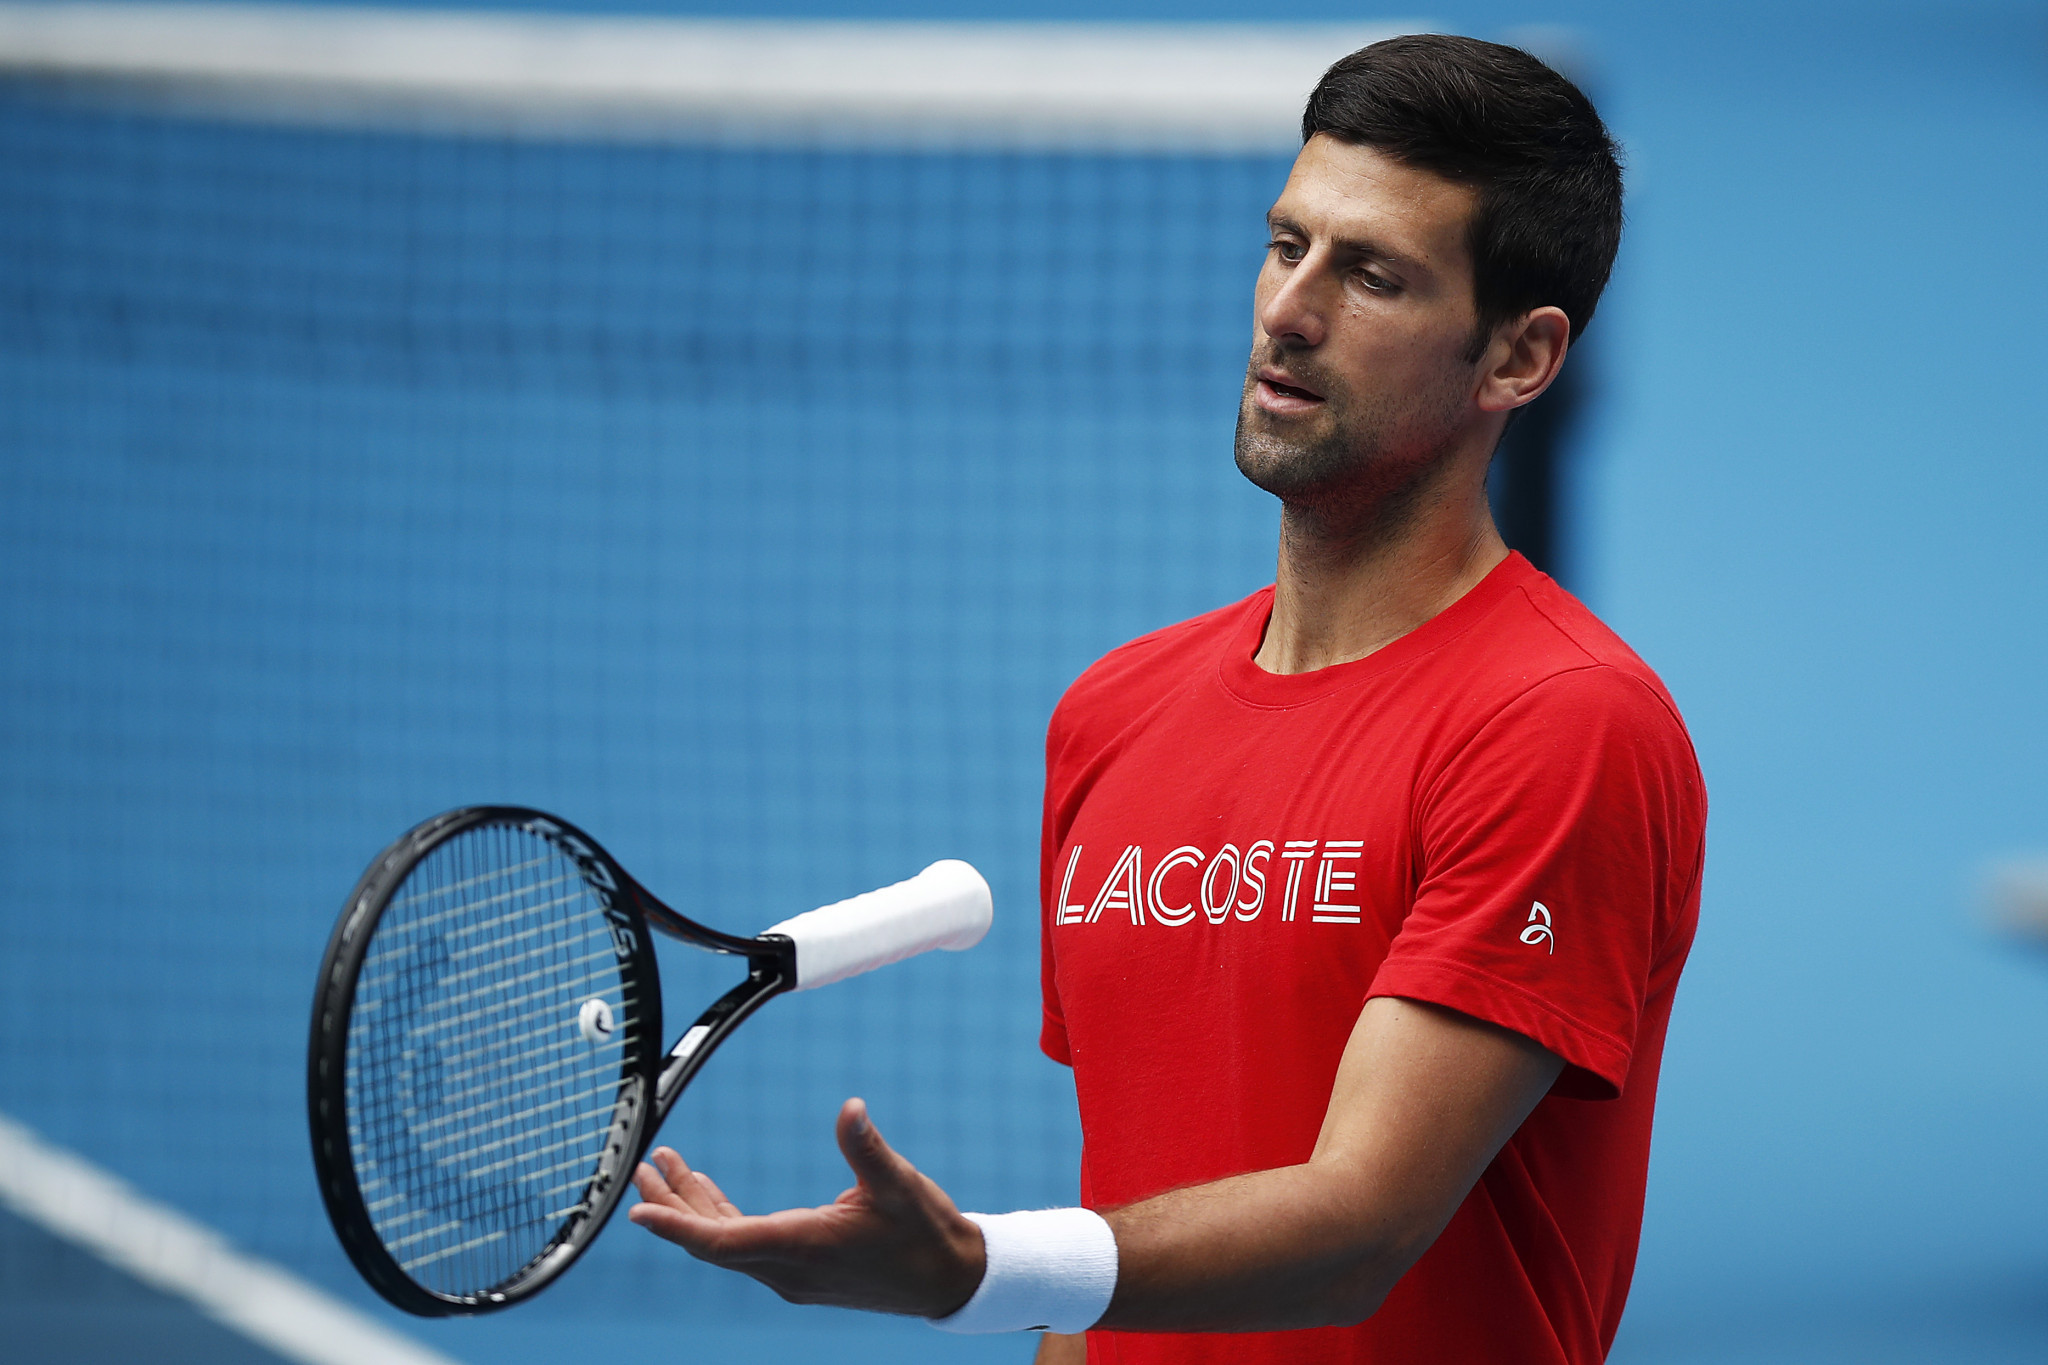 Racket sponsor Head caught in gaffe after congratulating Djokovic for Australian Open victory